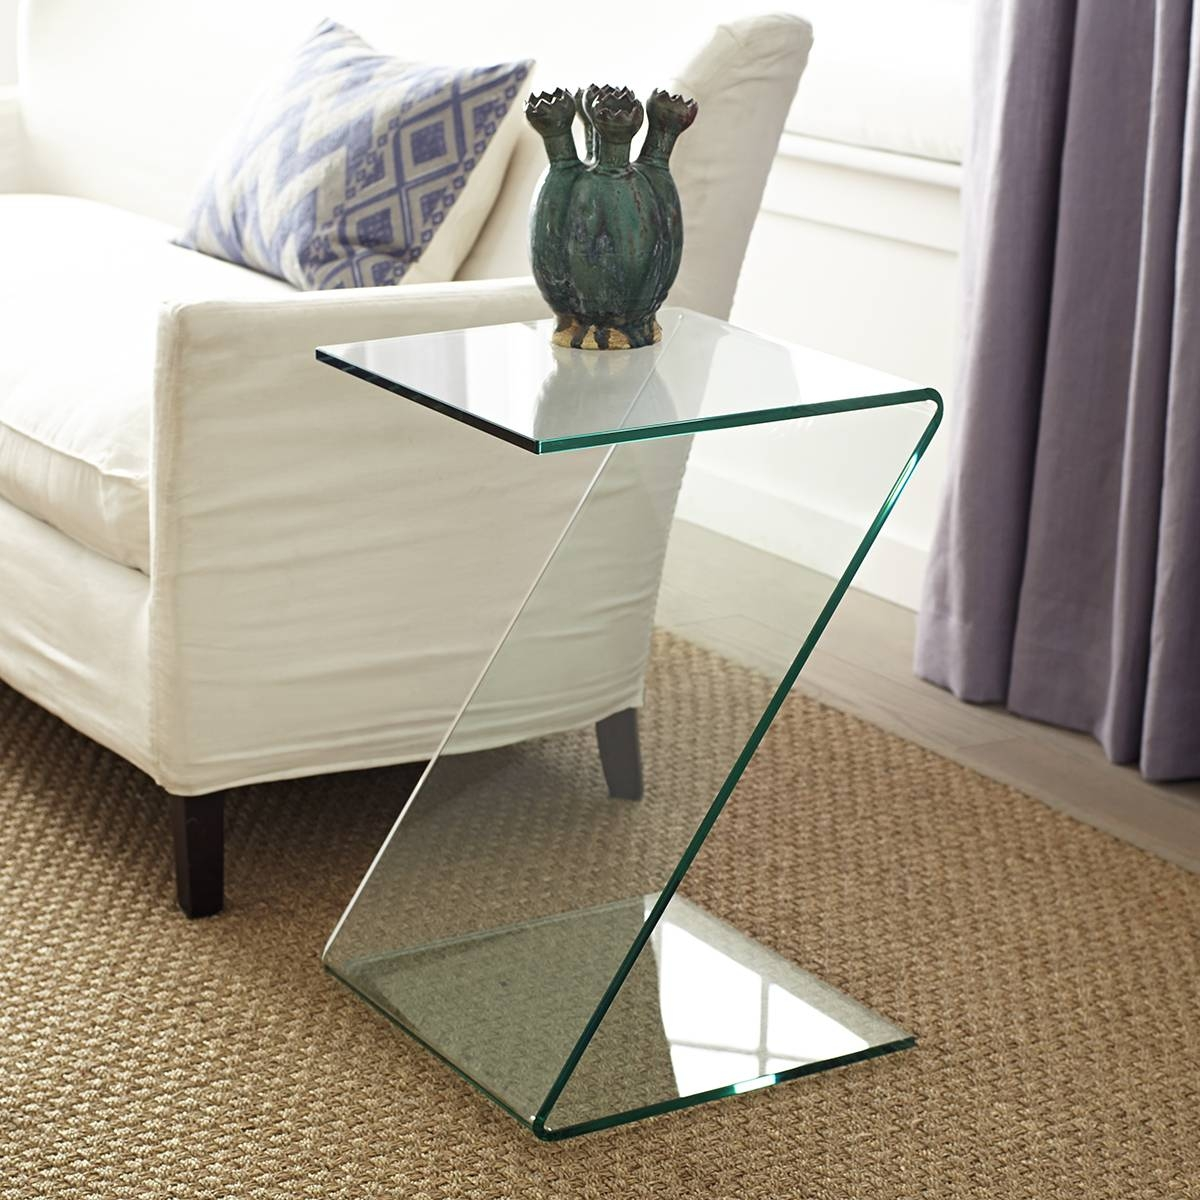 Zigzag Glass Table with Thick Glass Coffee Table (Image 15 of 15)